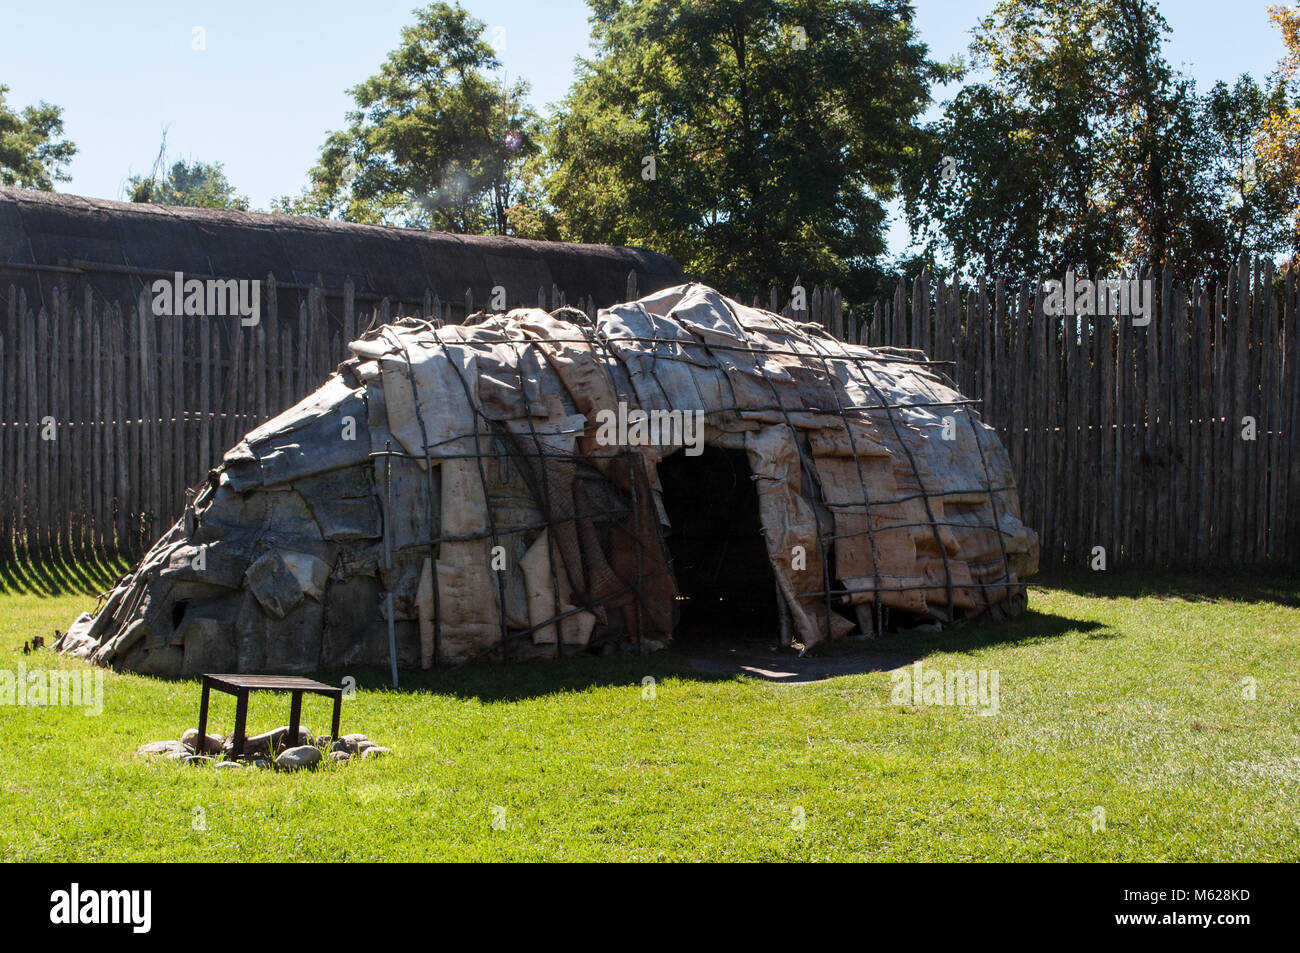 A wigwam at Sainte-Marie among the Hurons, the headquarters for the French Jesuit Mission to the Huron Wendat people. - Stock Image